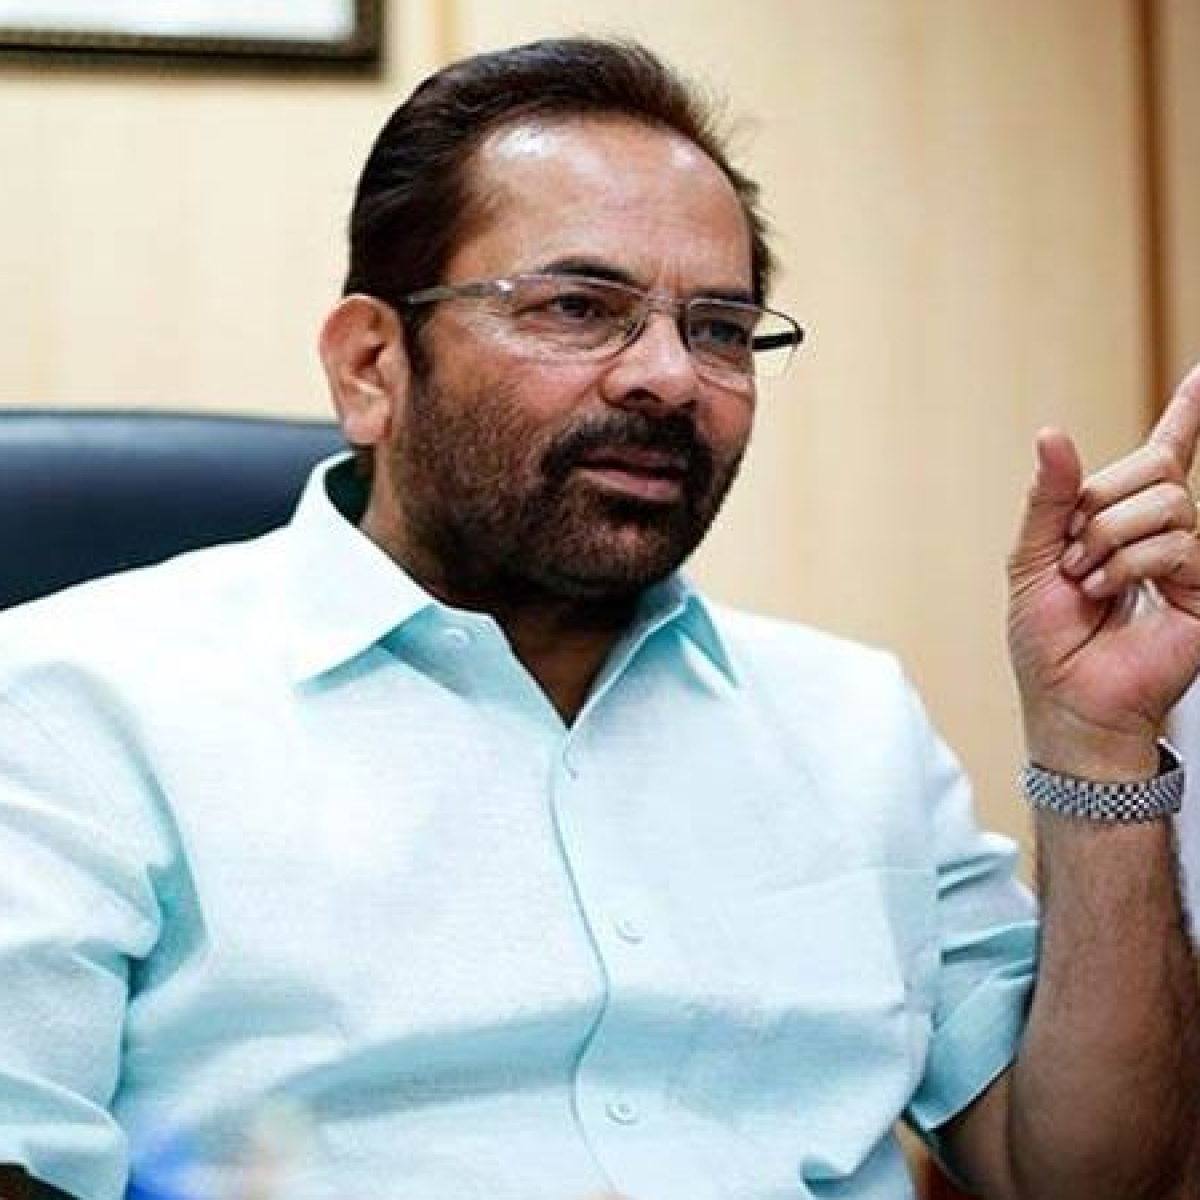 Mukhtar Abbas Naqvi slams Rahul Gandhi's 'failed lockdown' remark